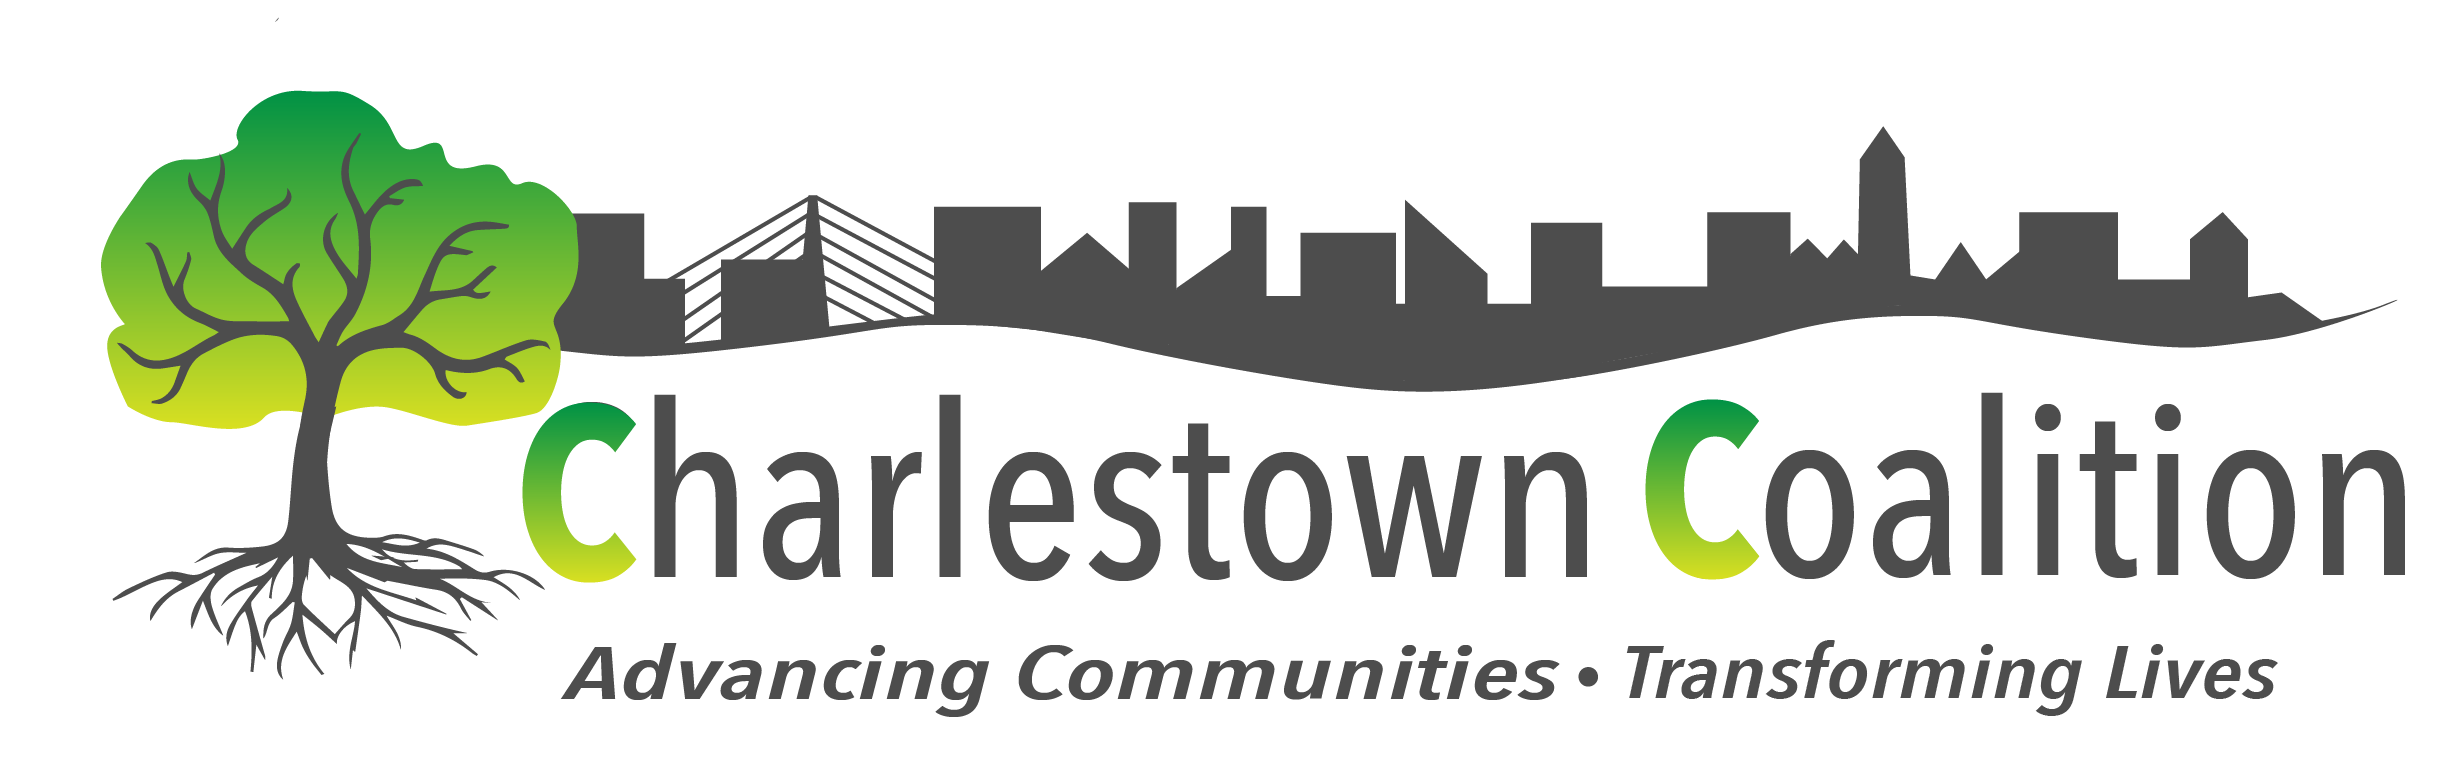 Charlestown Coalition